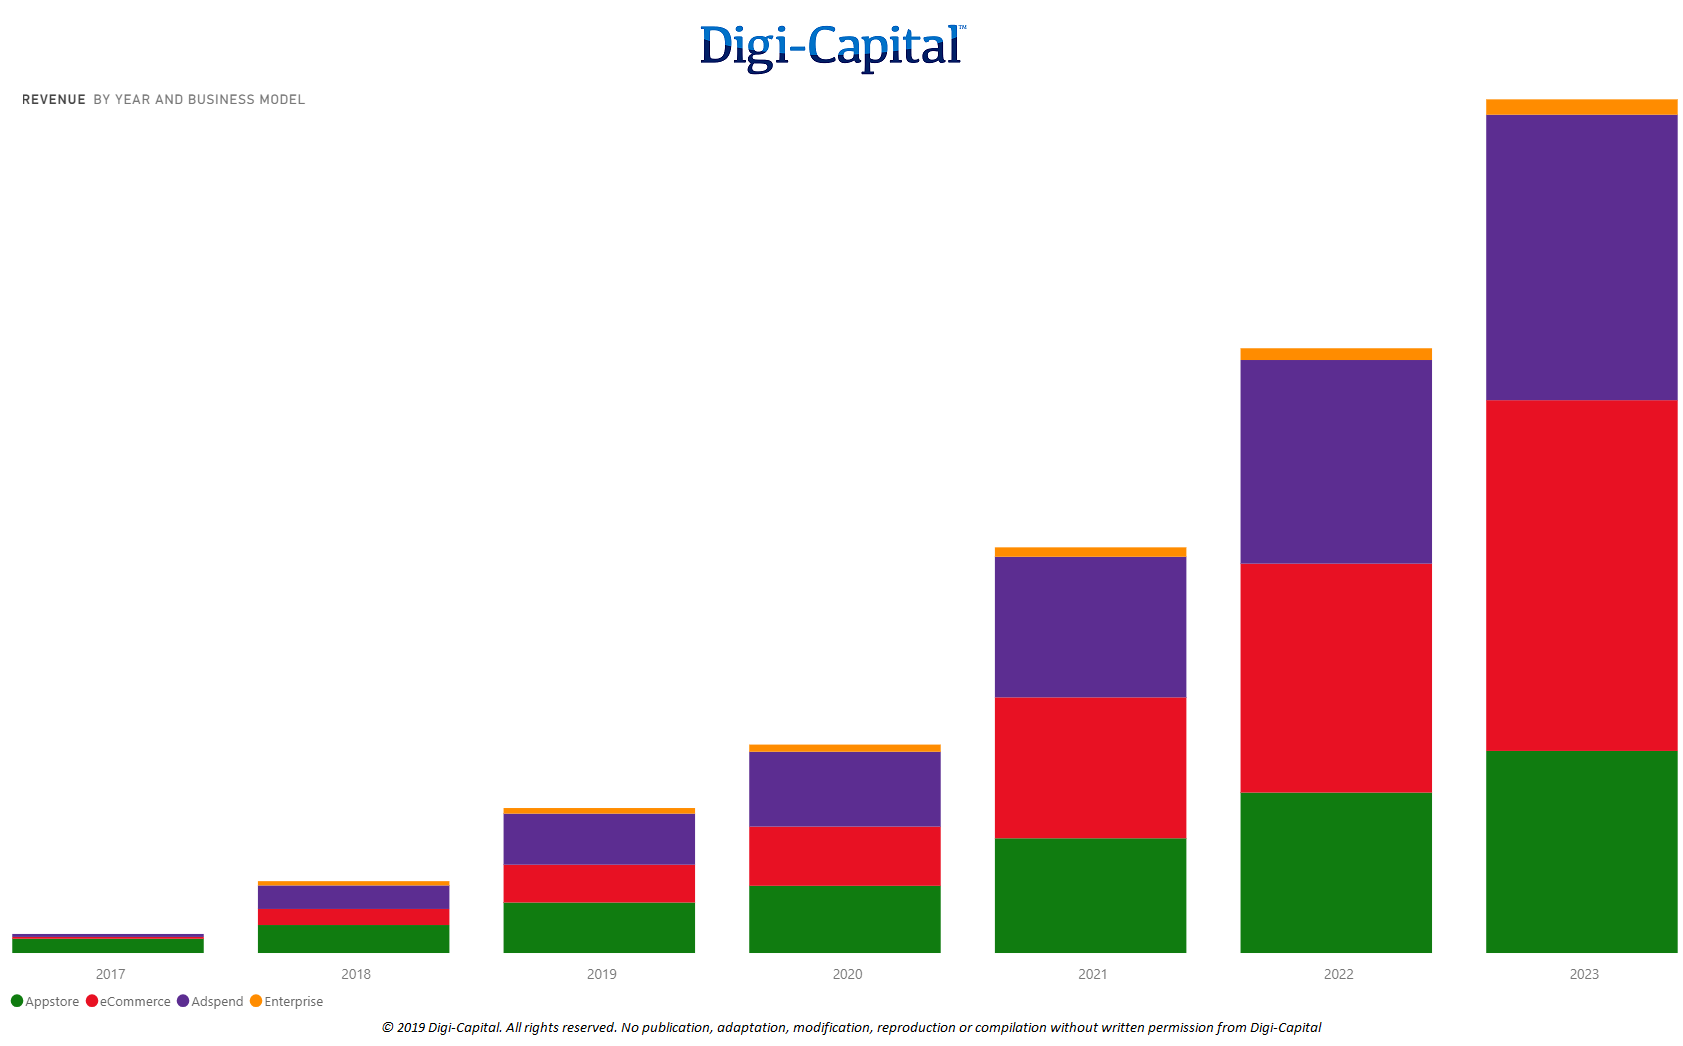 Mobile AR Business Model Revenue (Source: Digi-Capital AR/VR Analytics Platform)